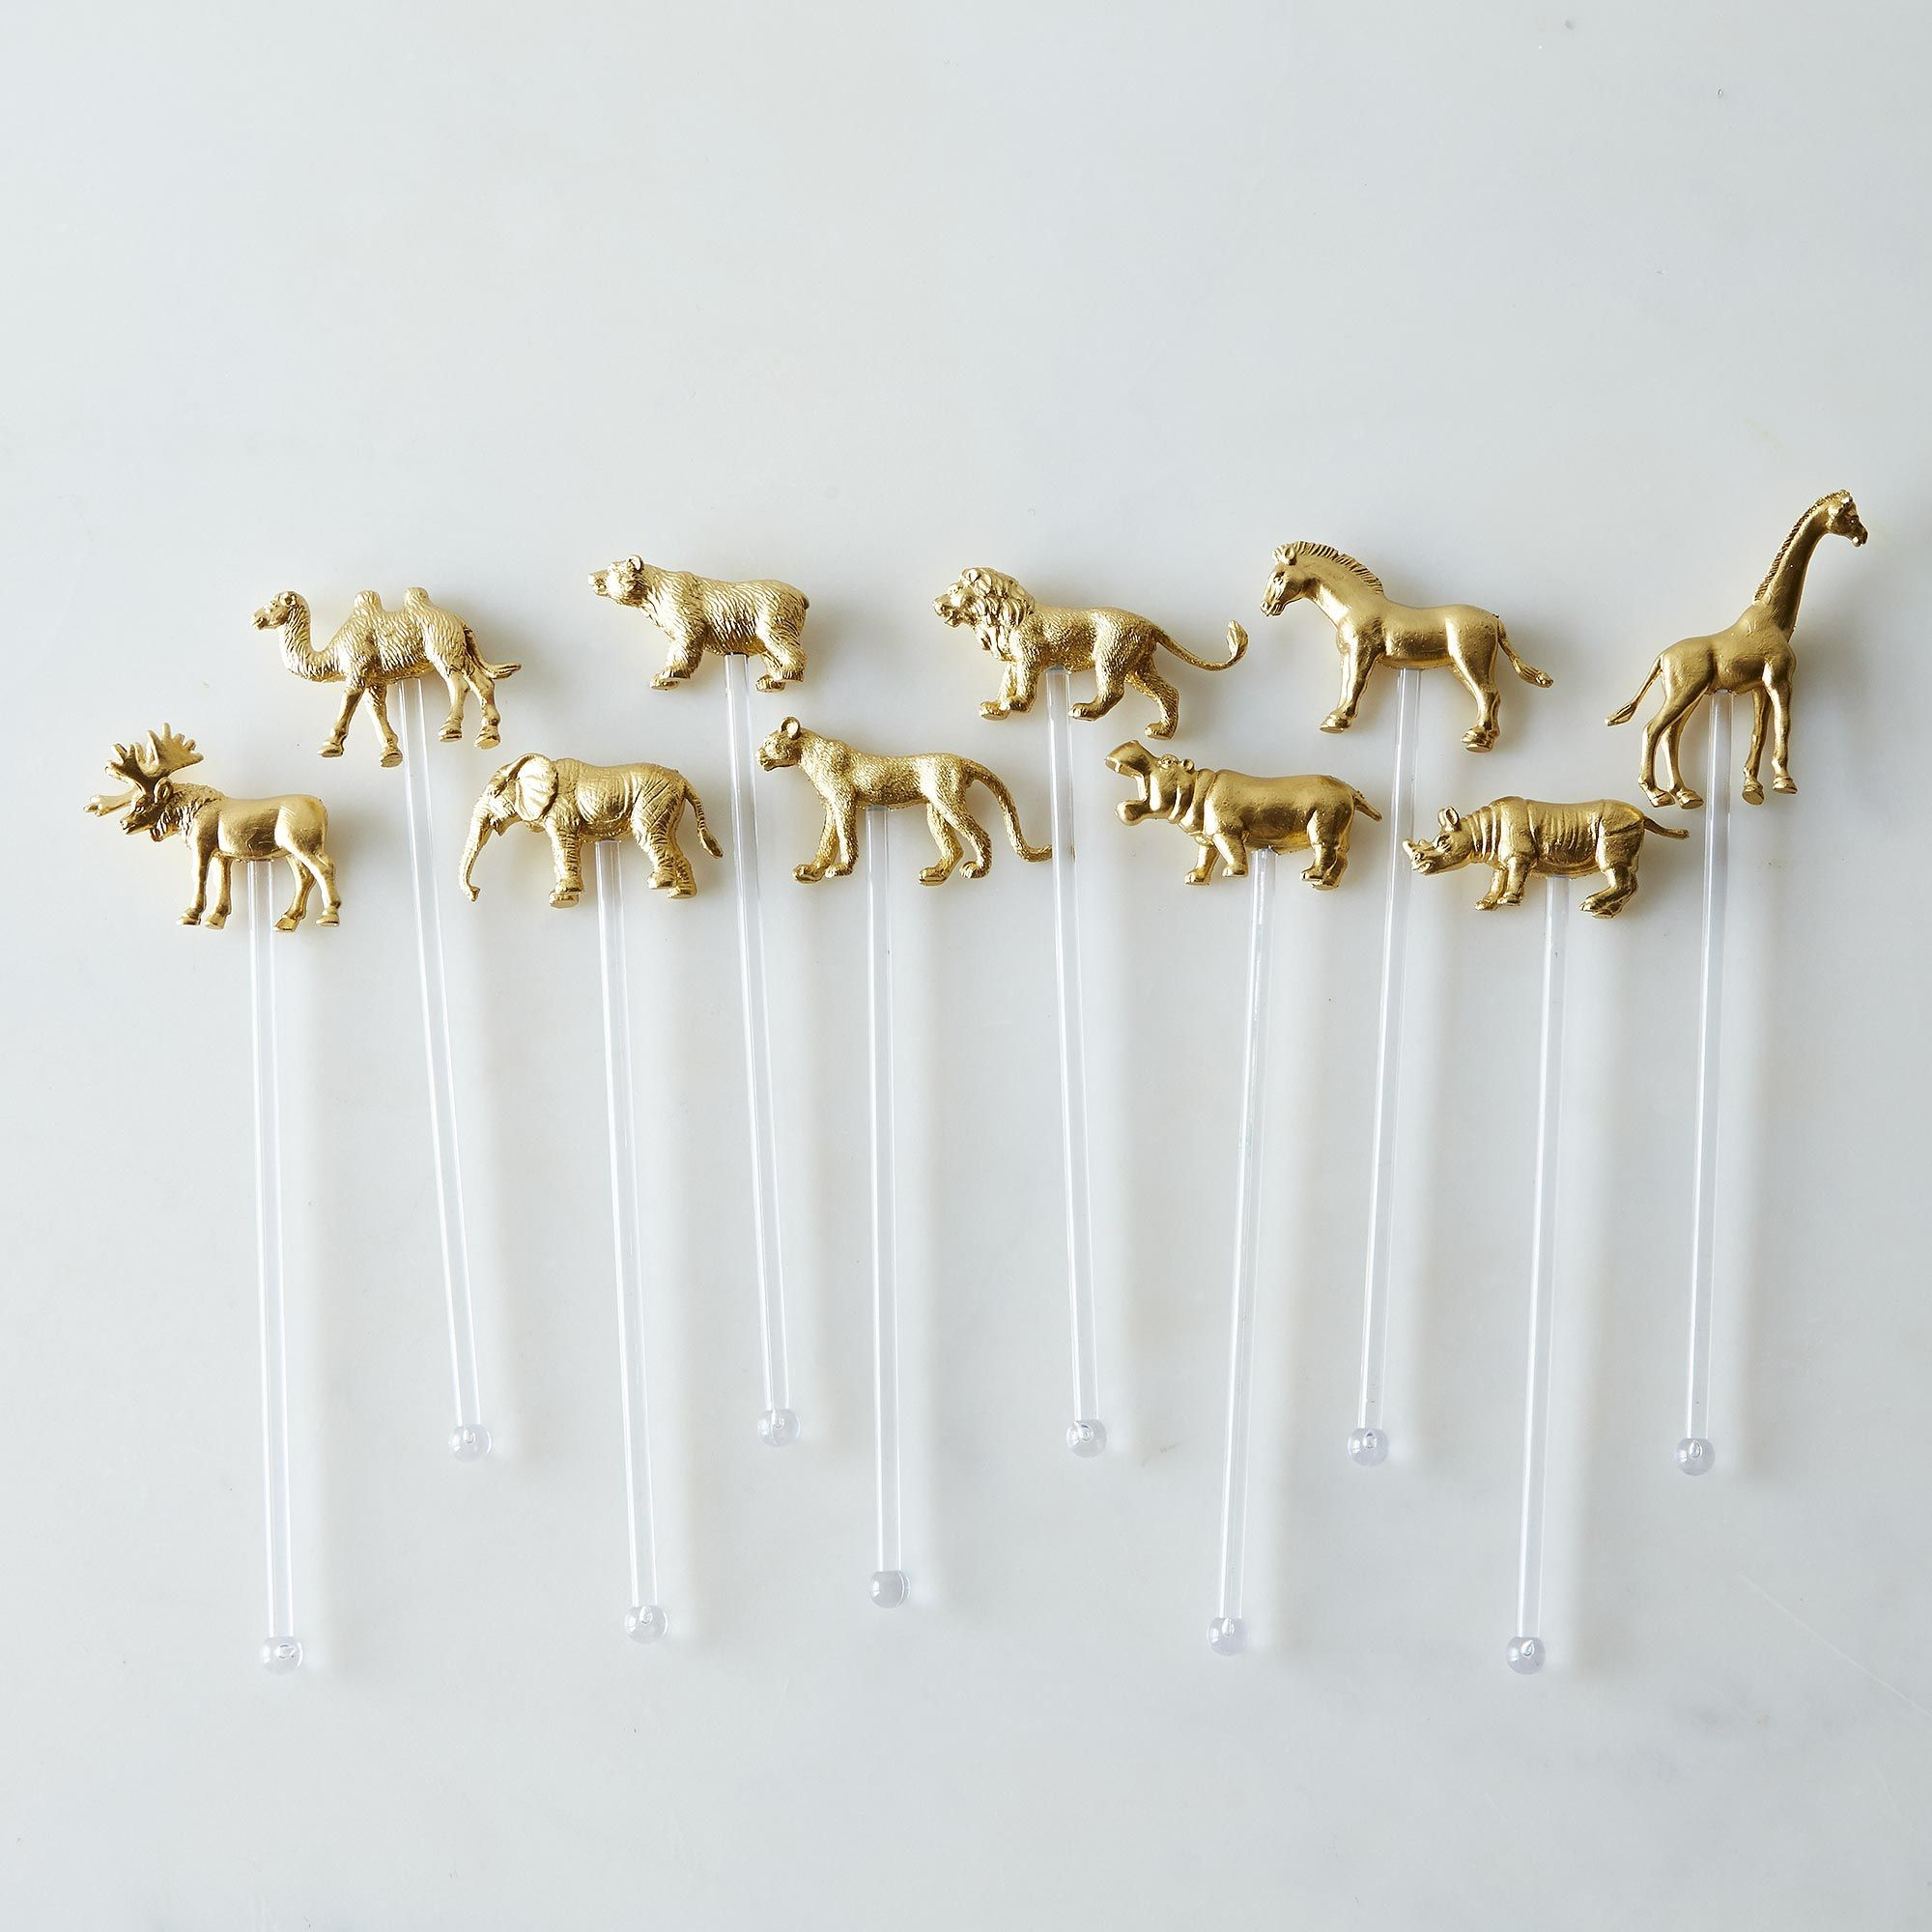 10a80a6e a0f6 11e5 a190 0ef7535729df  2014 0326 gnome sweet gnome clear animal stirrers 015